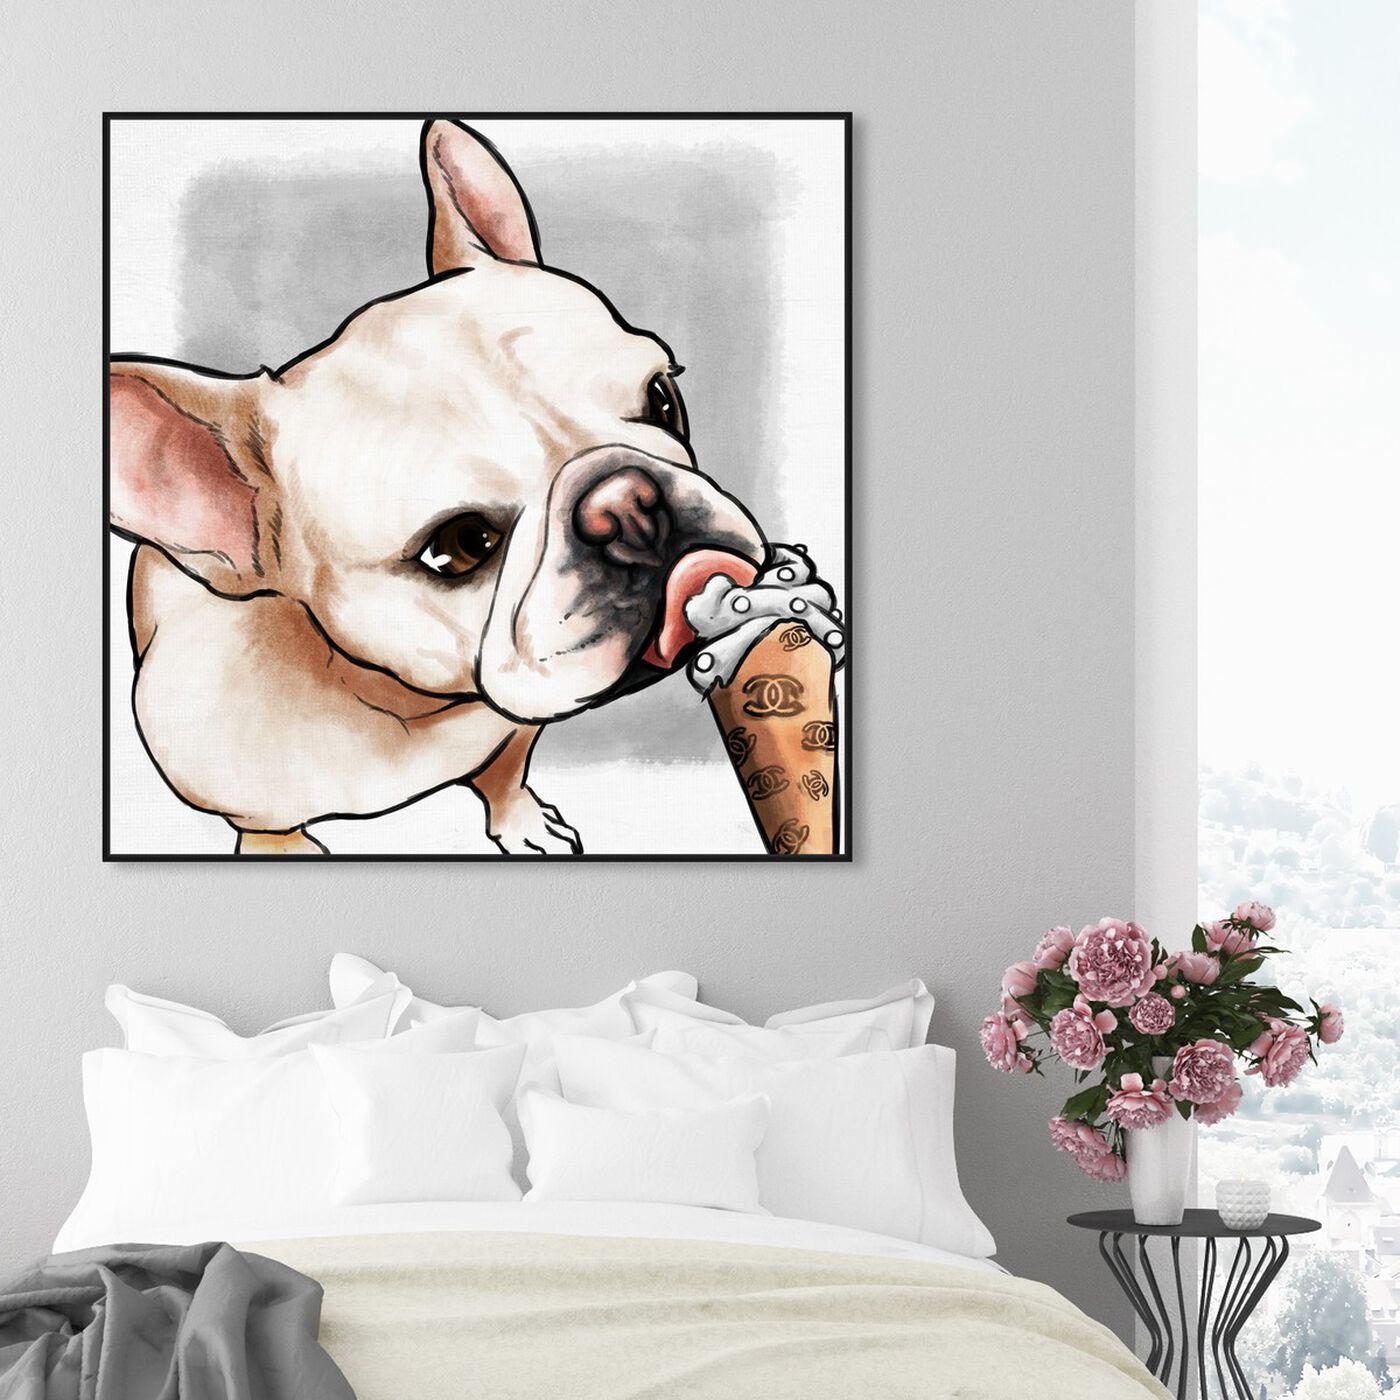 Hanging view of My Favorite Treat Gray featuring animals and dogs and puppies art.